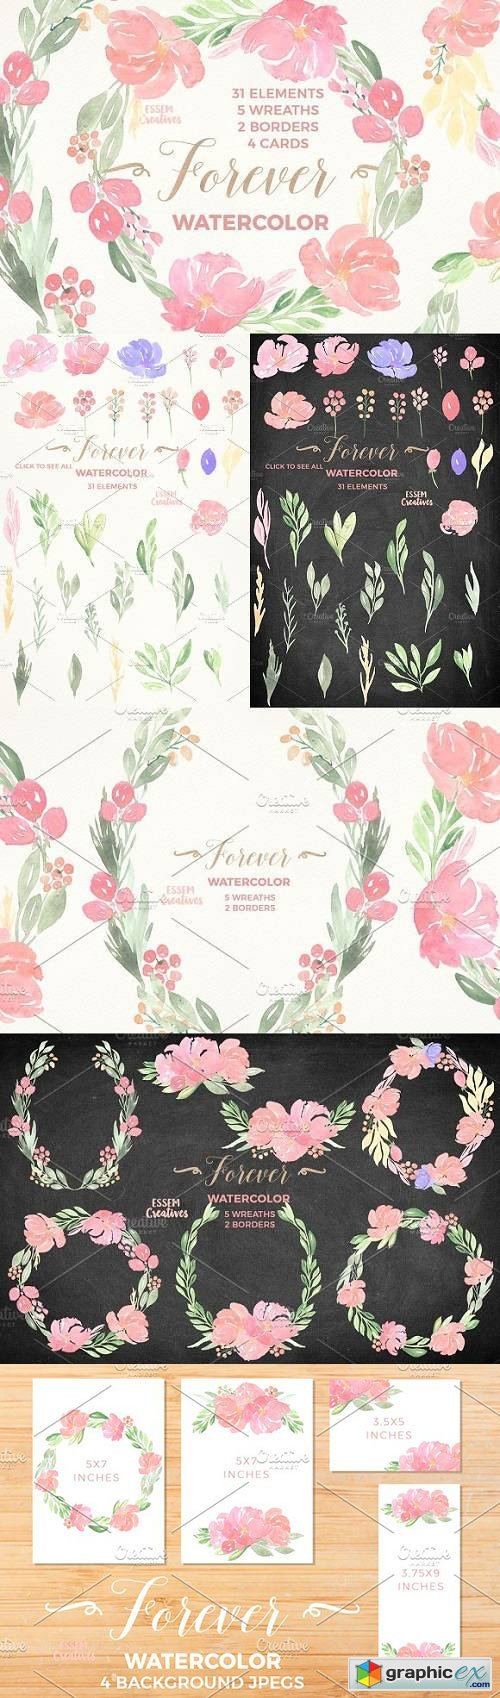 Watercolor Floral Bundle - Forever